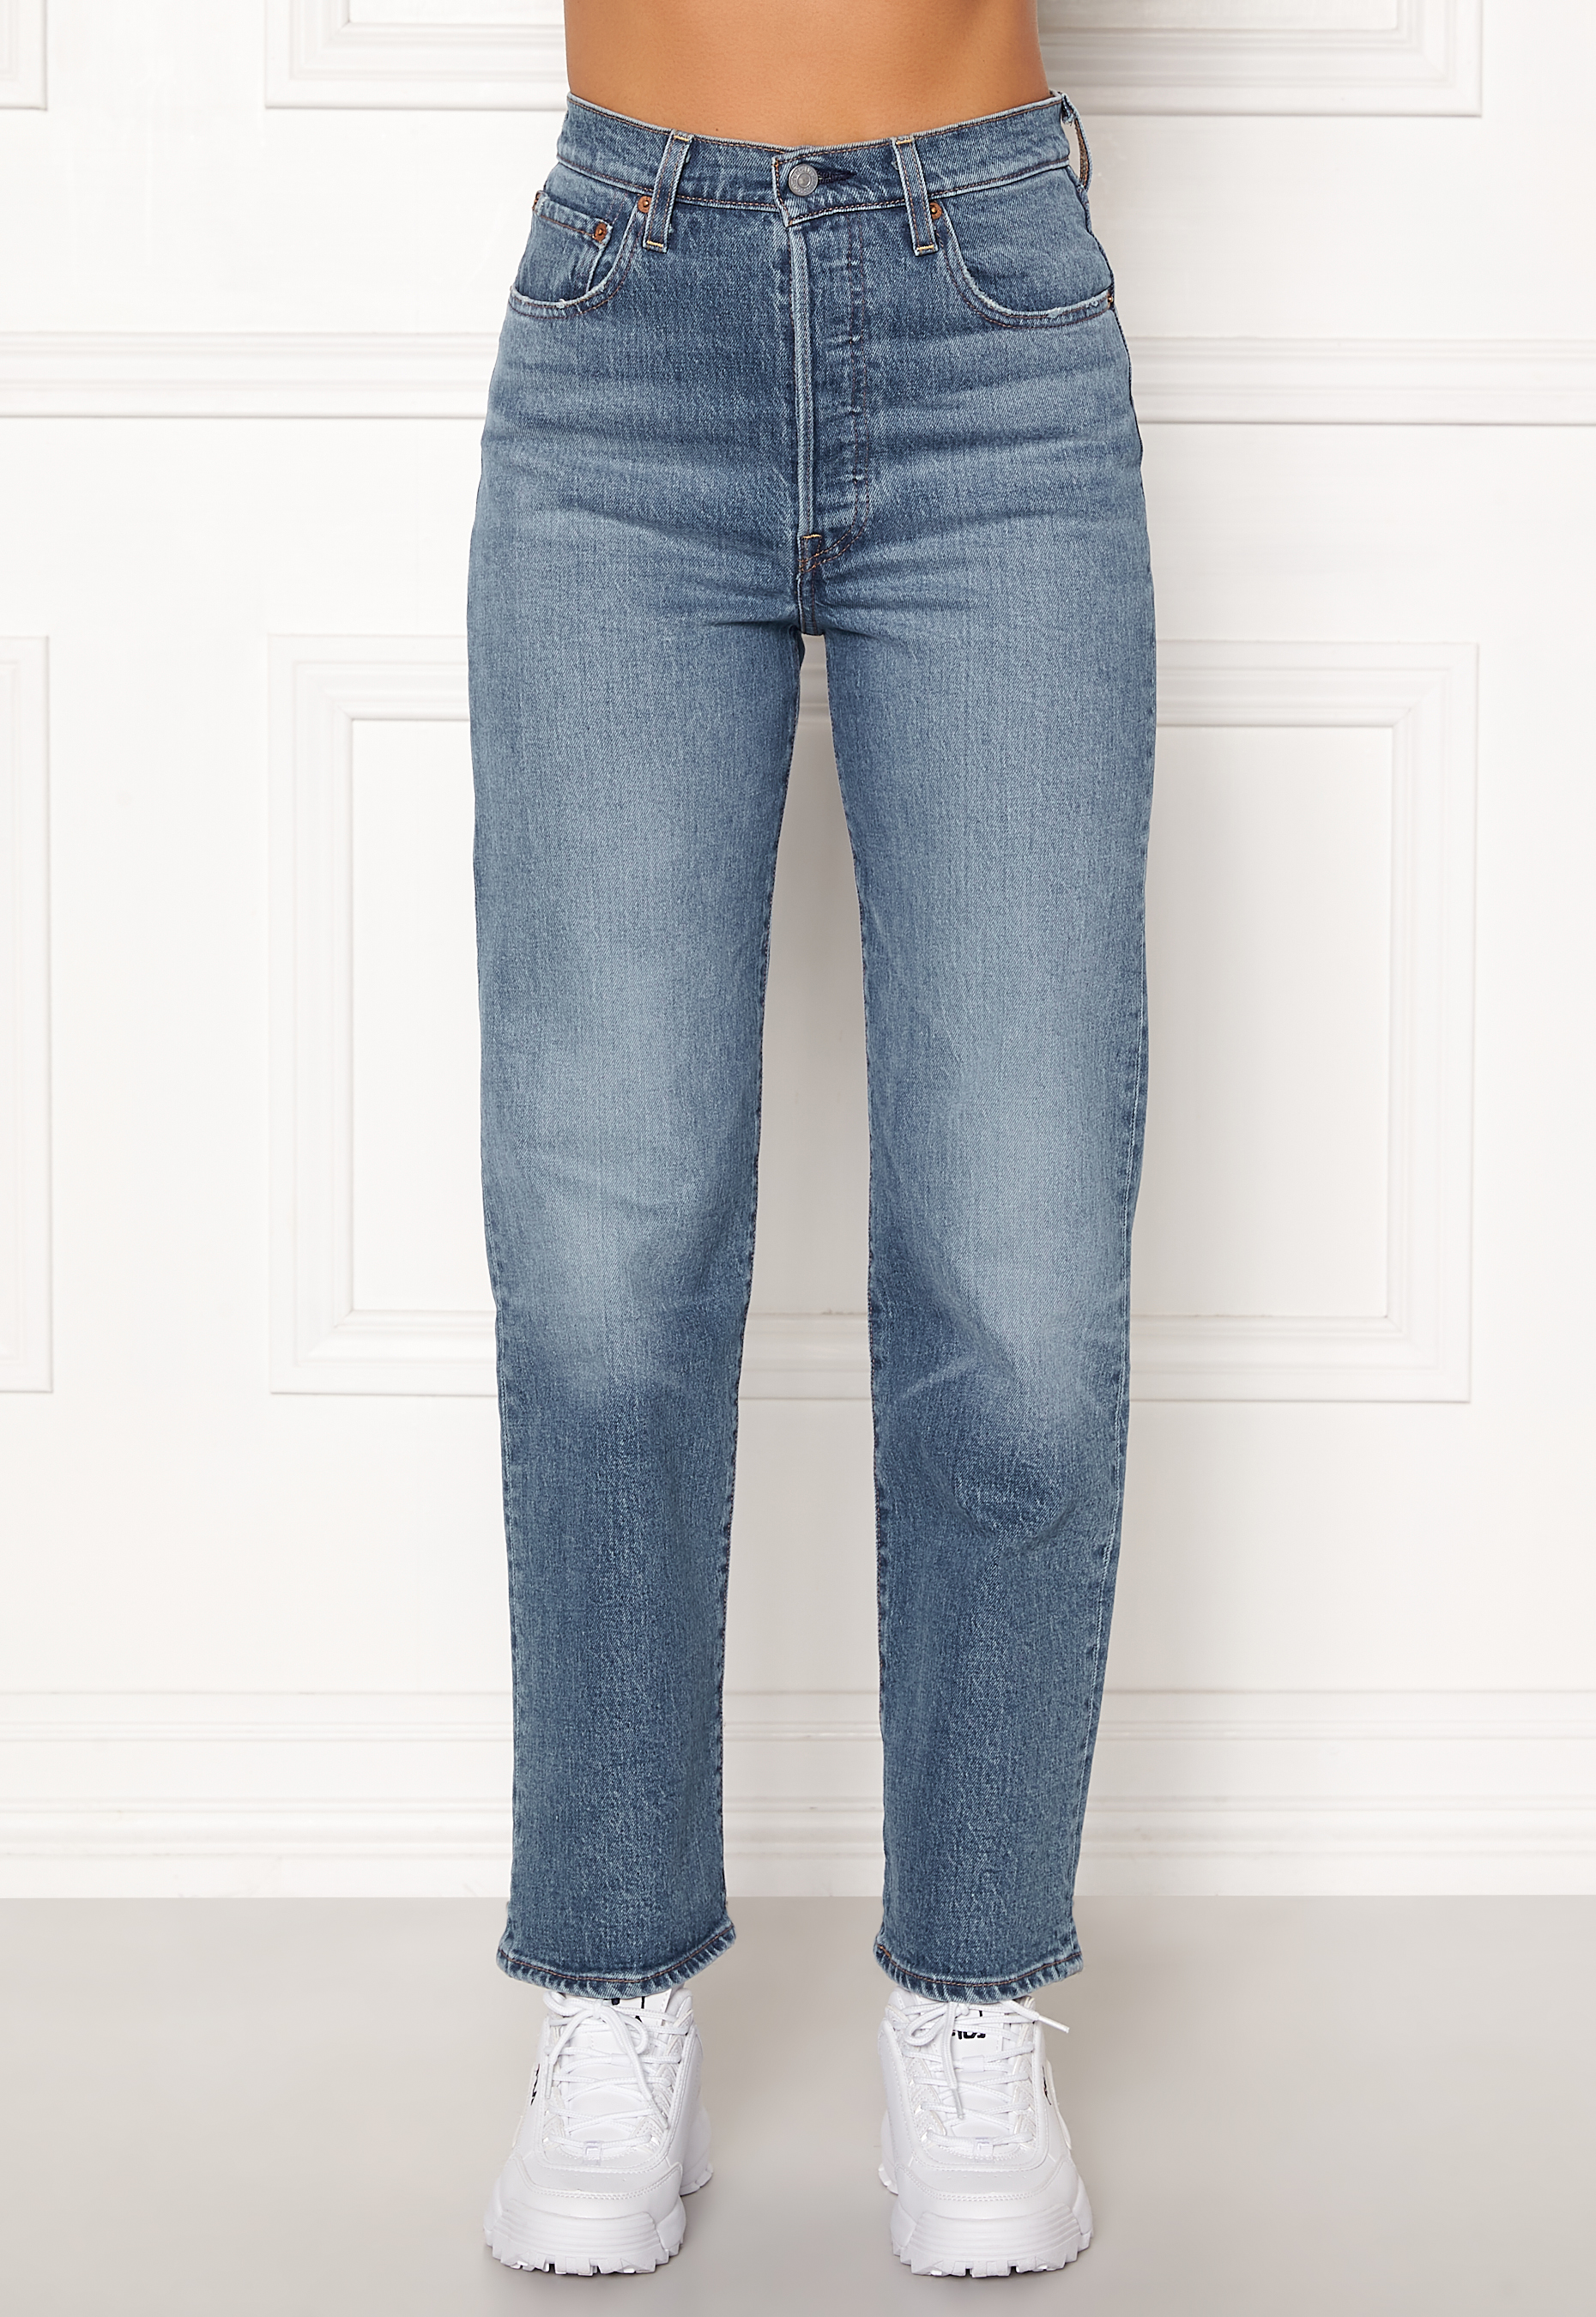 LEVI'S Ribcage Straight Ankle Jeans 0019 Jive Swing Bubbleroom